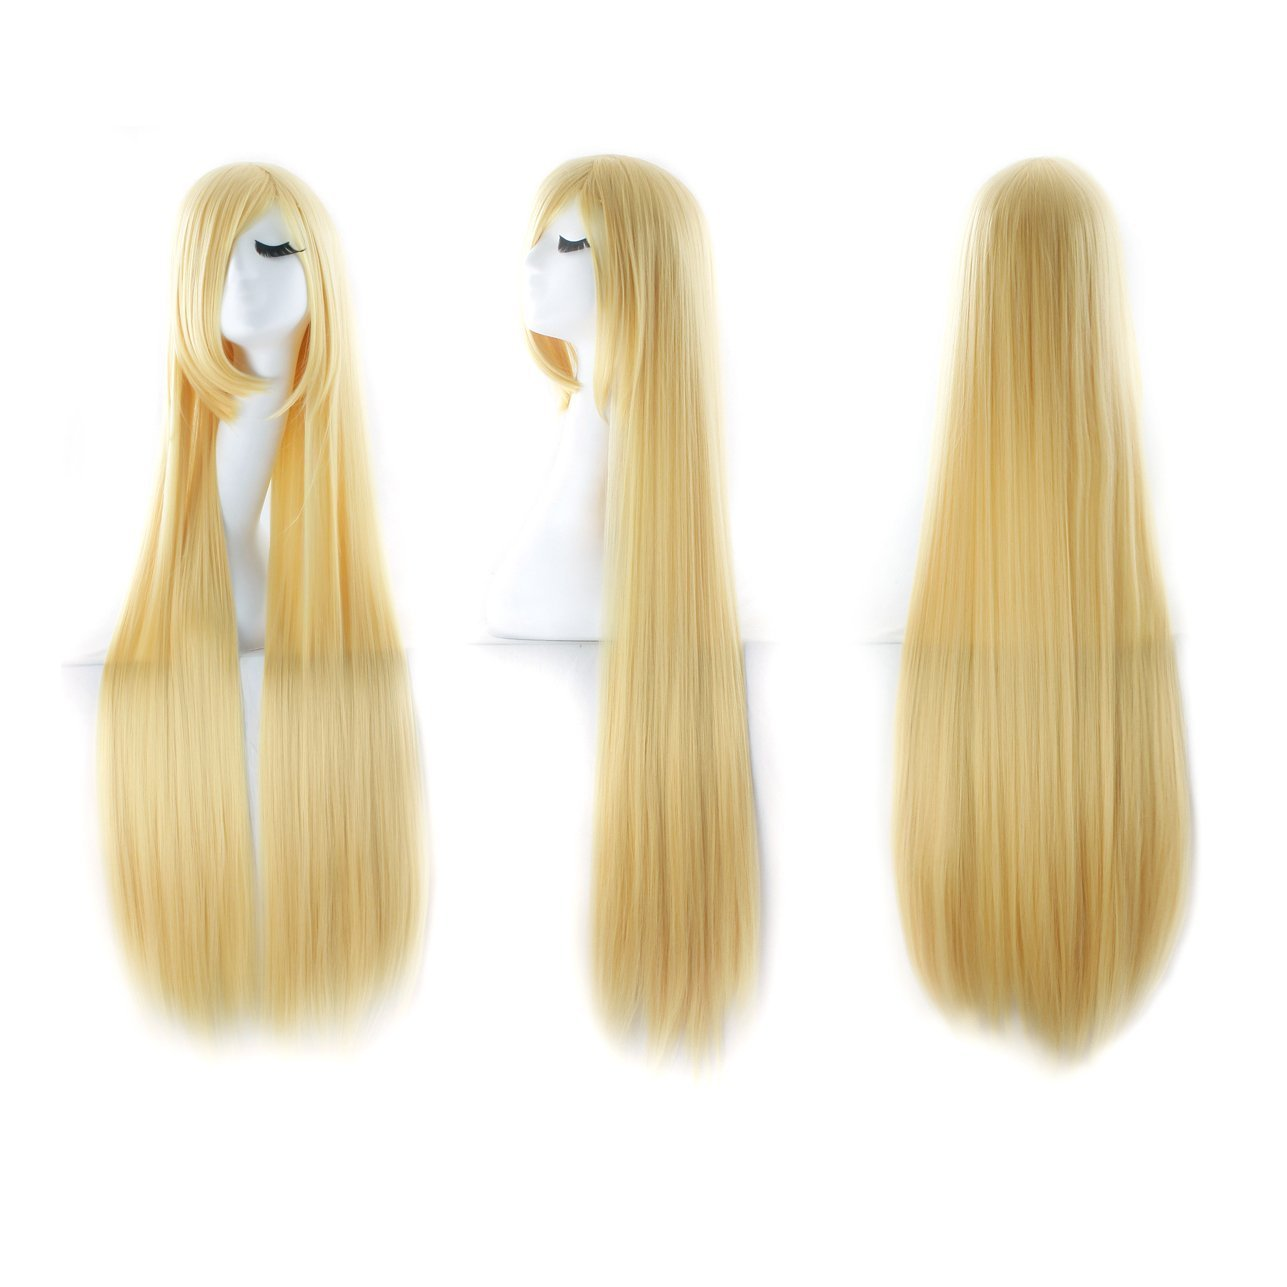 Black MapofBeauty 40 100cm Anime Costume Long Straight Cosplay Wig Party Wig